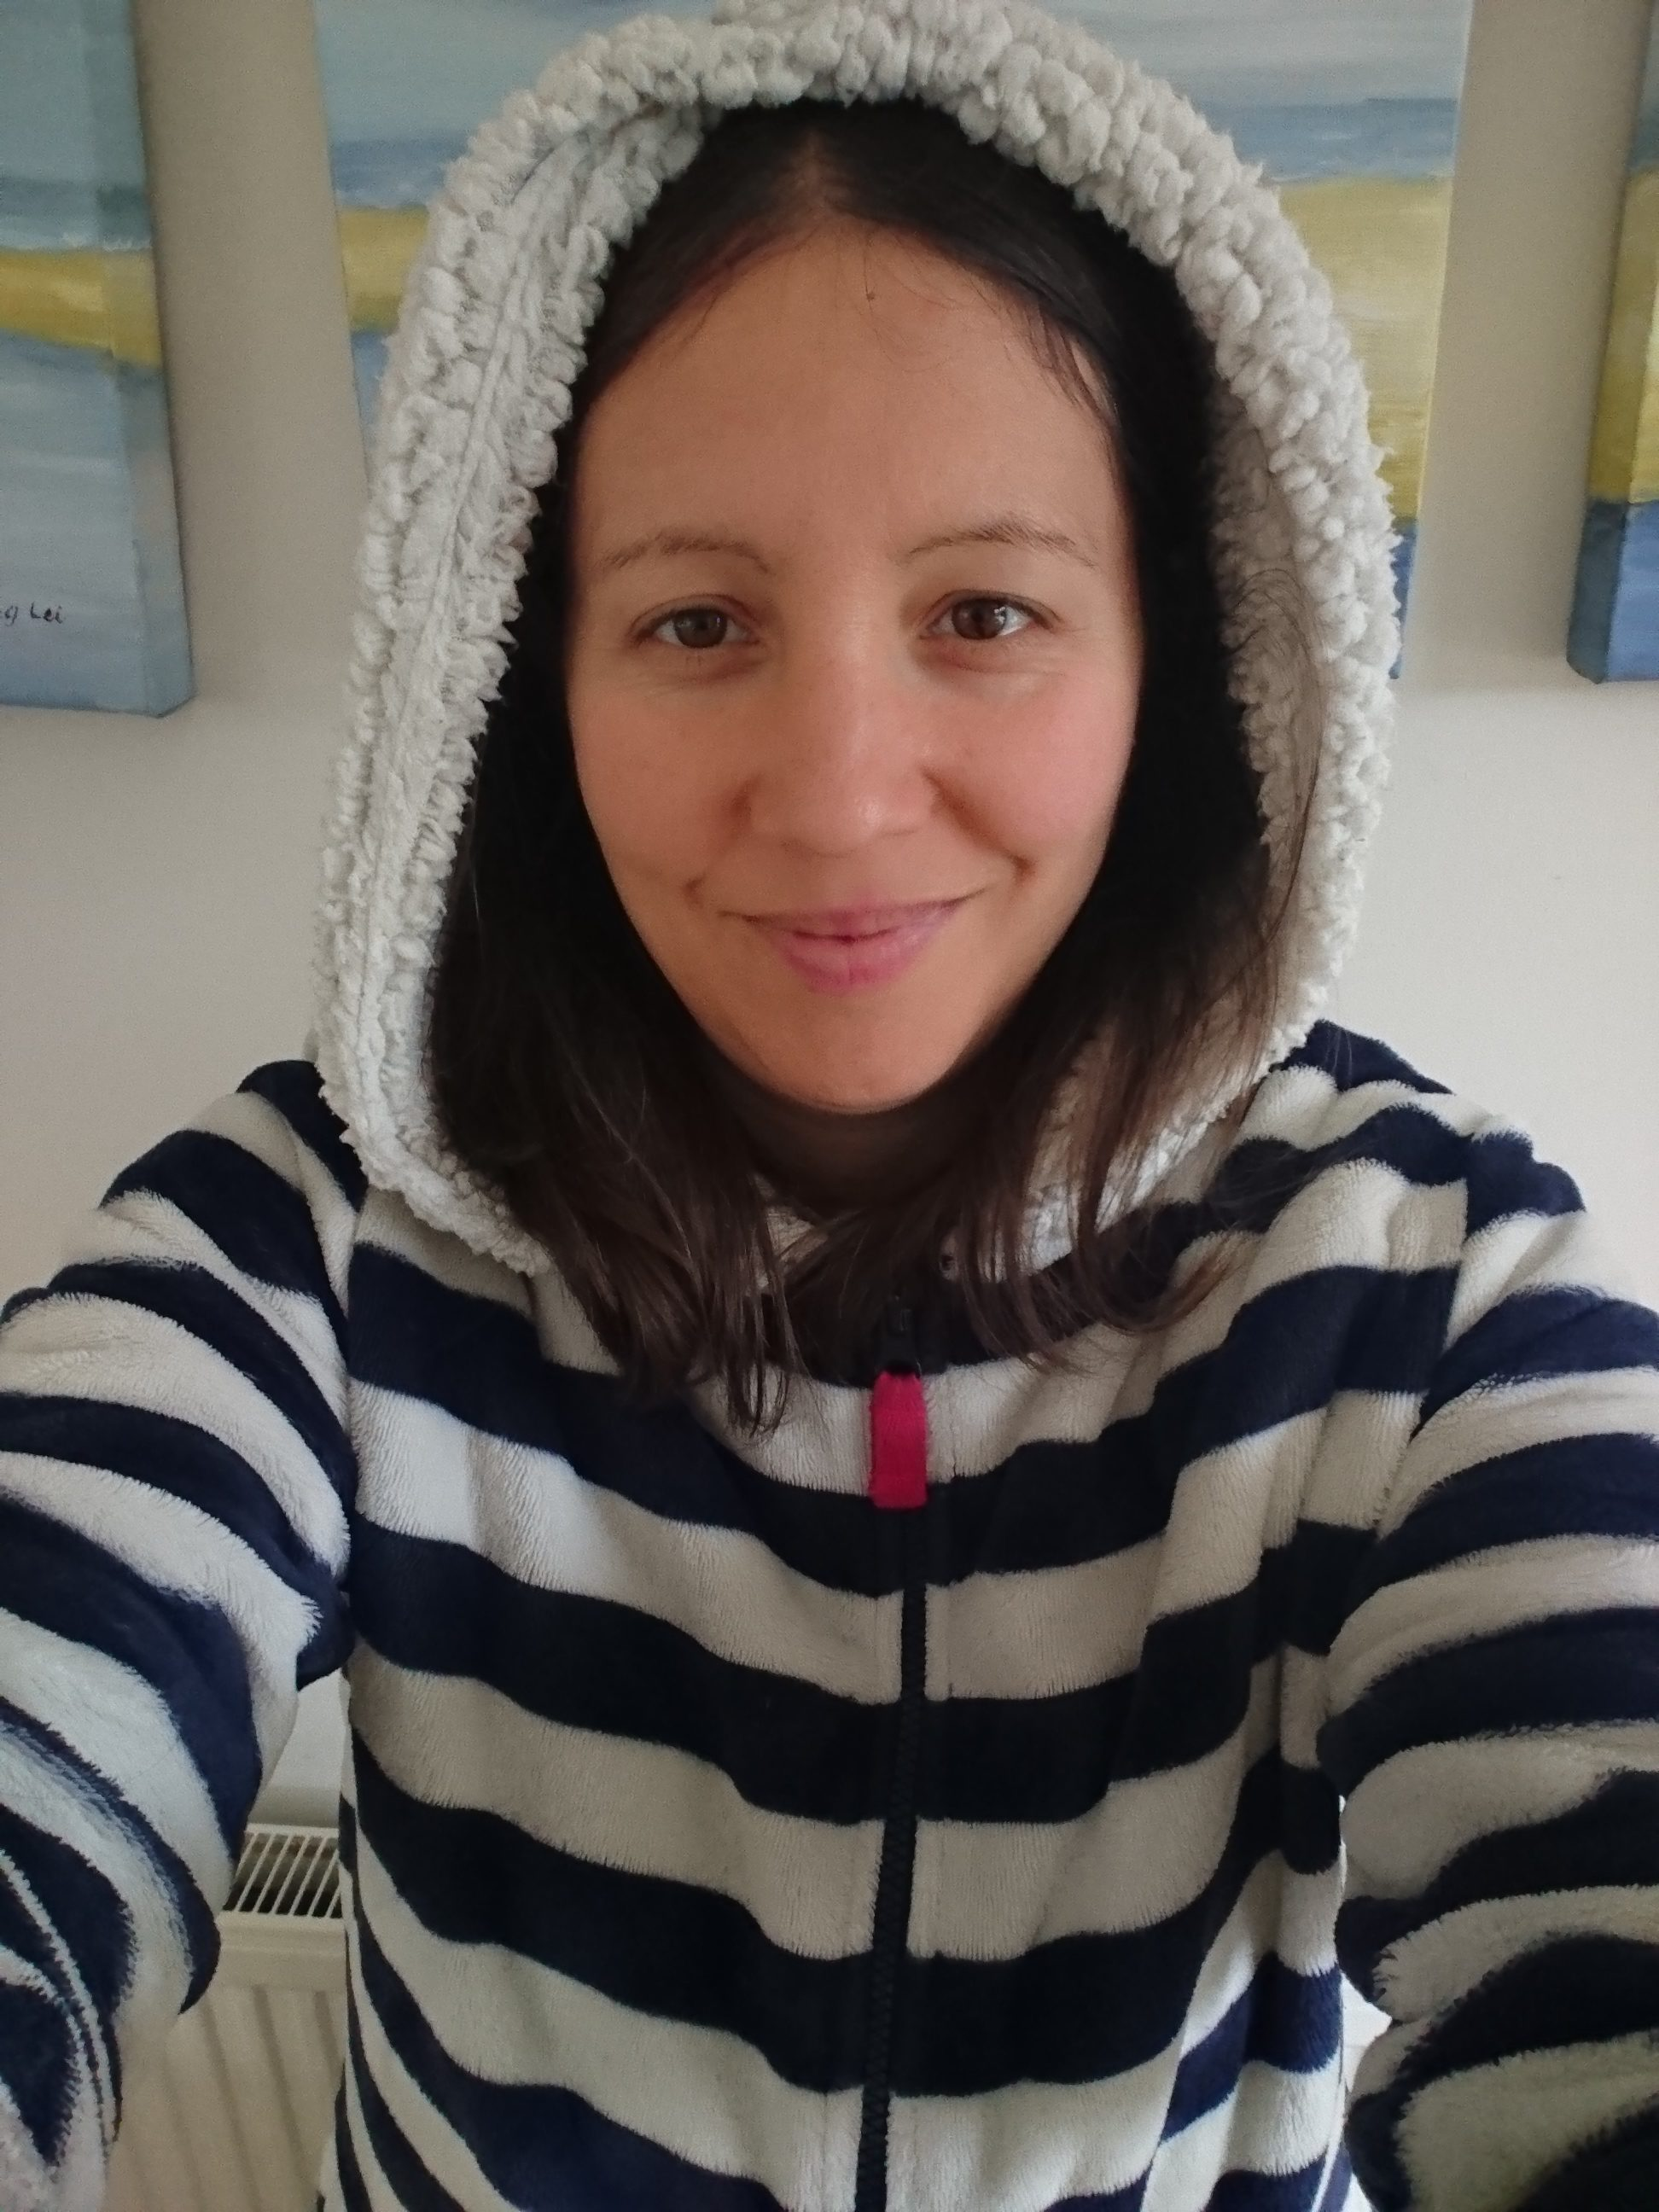 Dressing gown, staying warm, energy saving, heating bills, warm in winter, wear layers